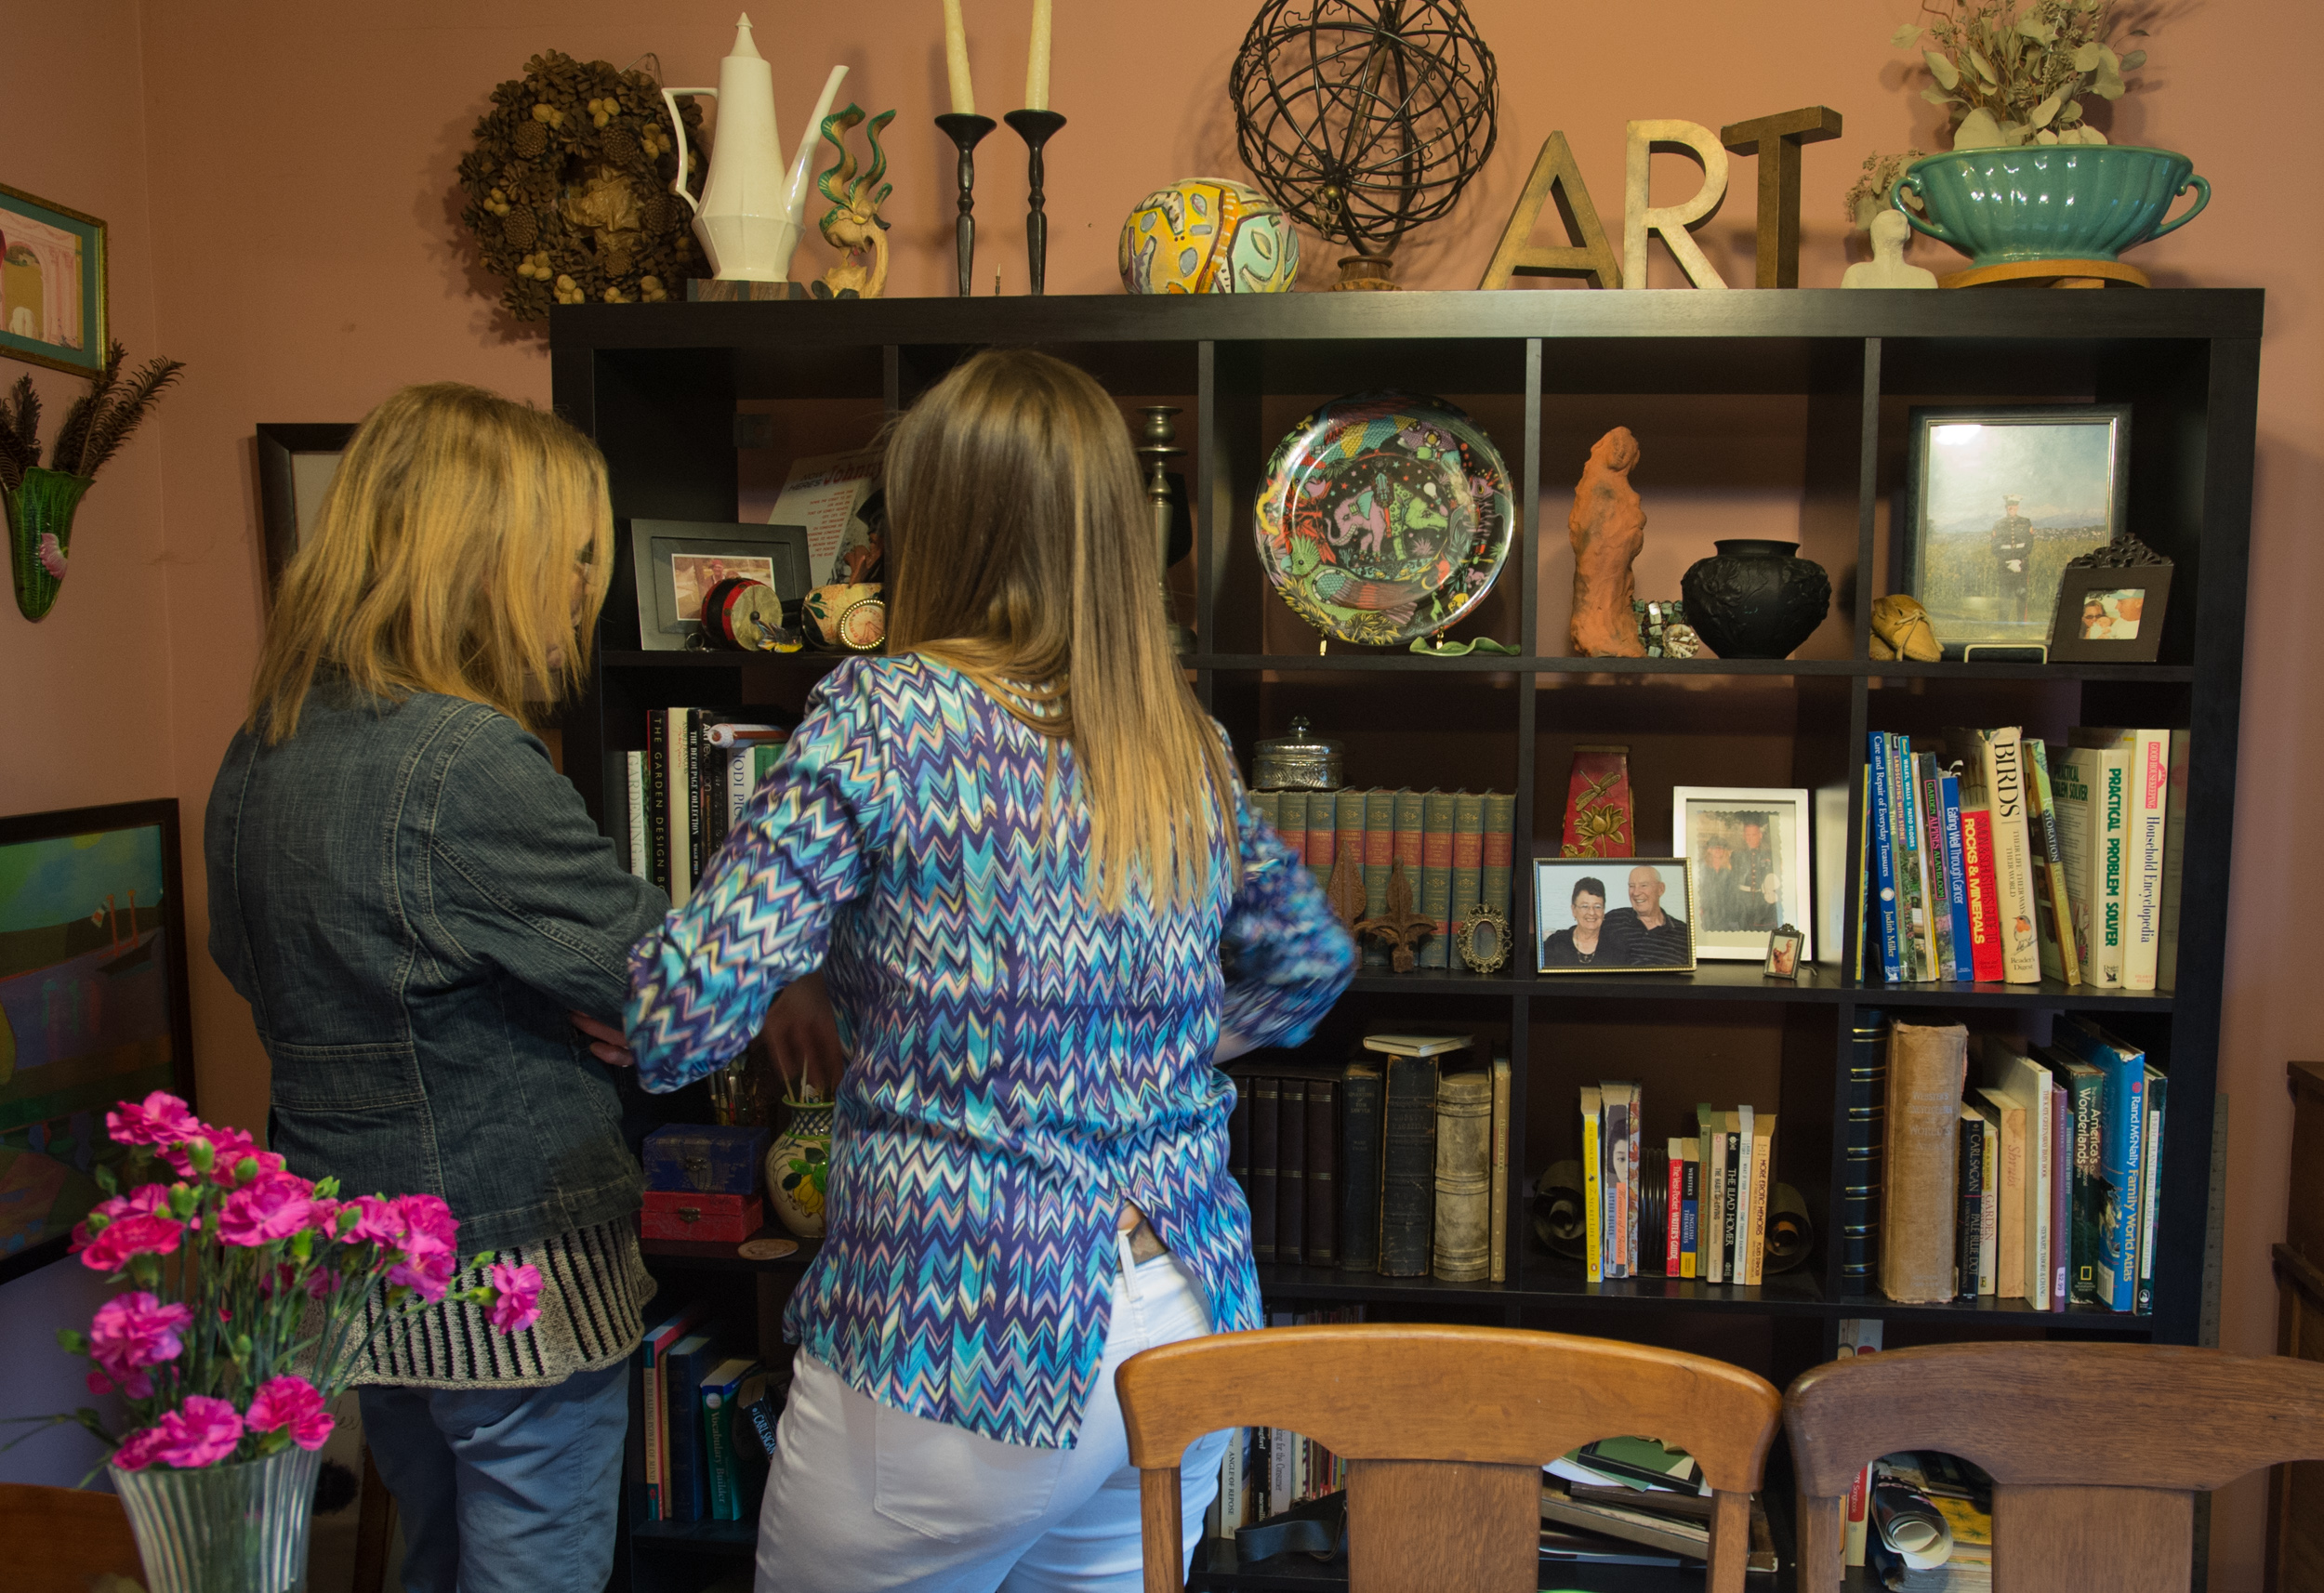 Carol shows a relative her collection of trinkets and artwork on a bookcase in her house on Easter Sunday, Apr. 5, 2015.